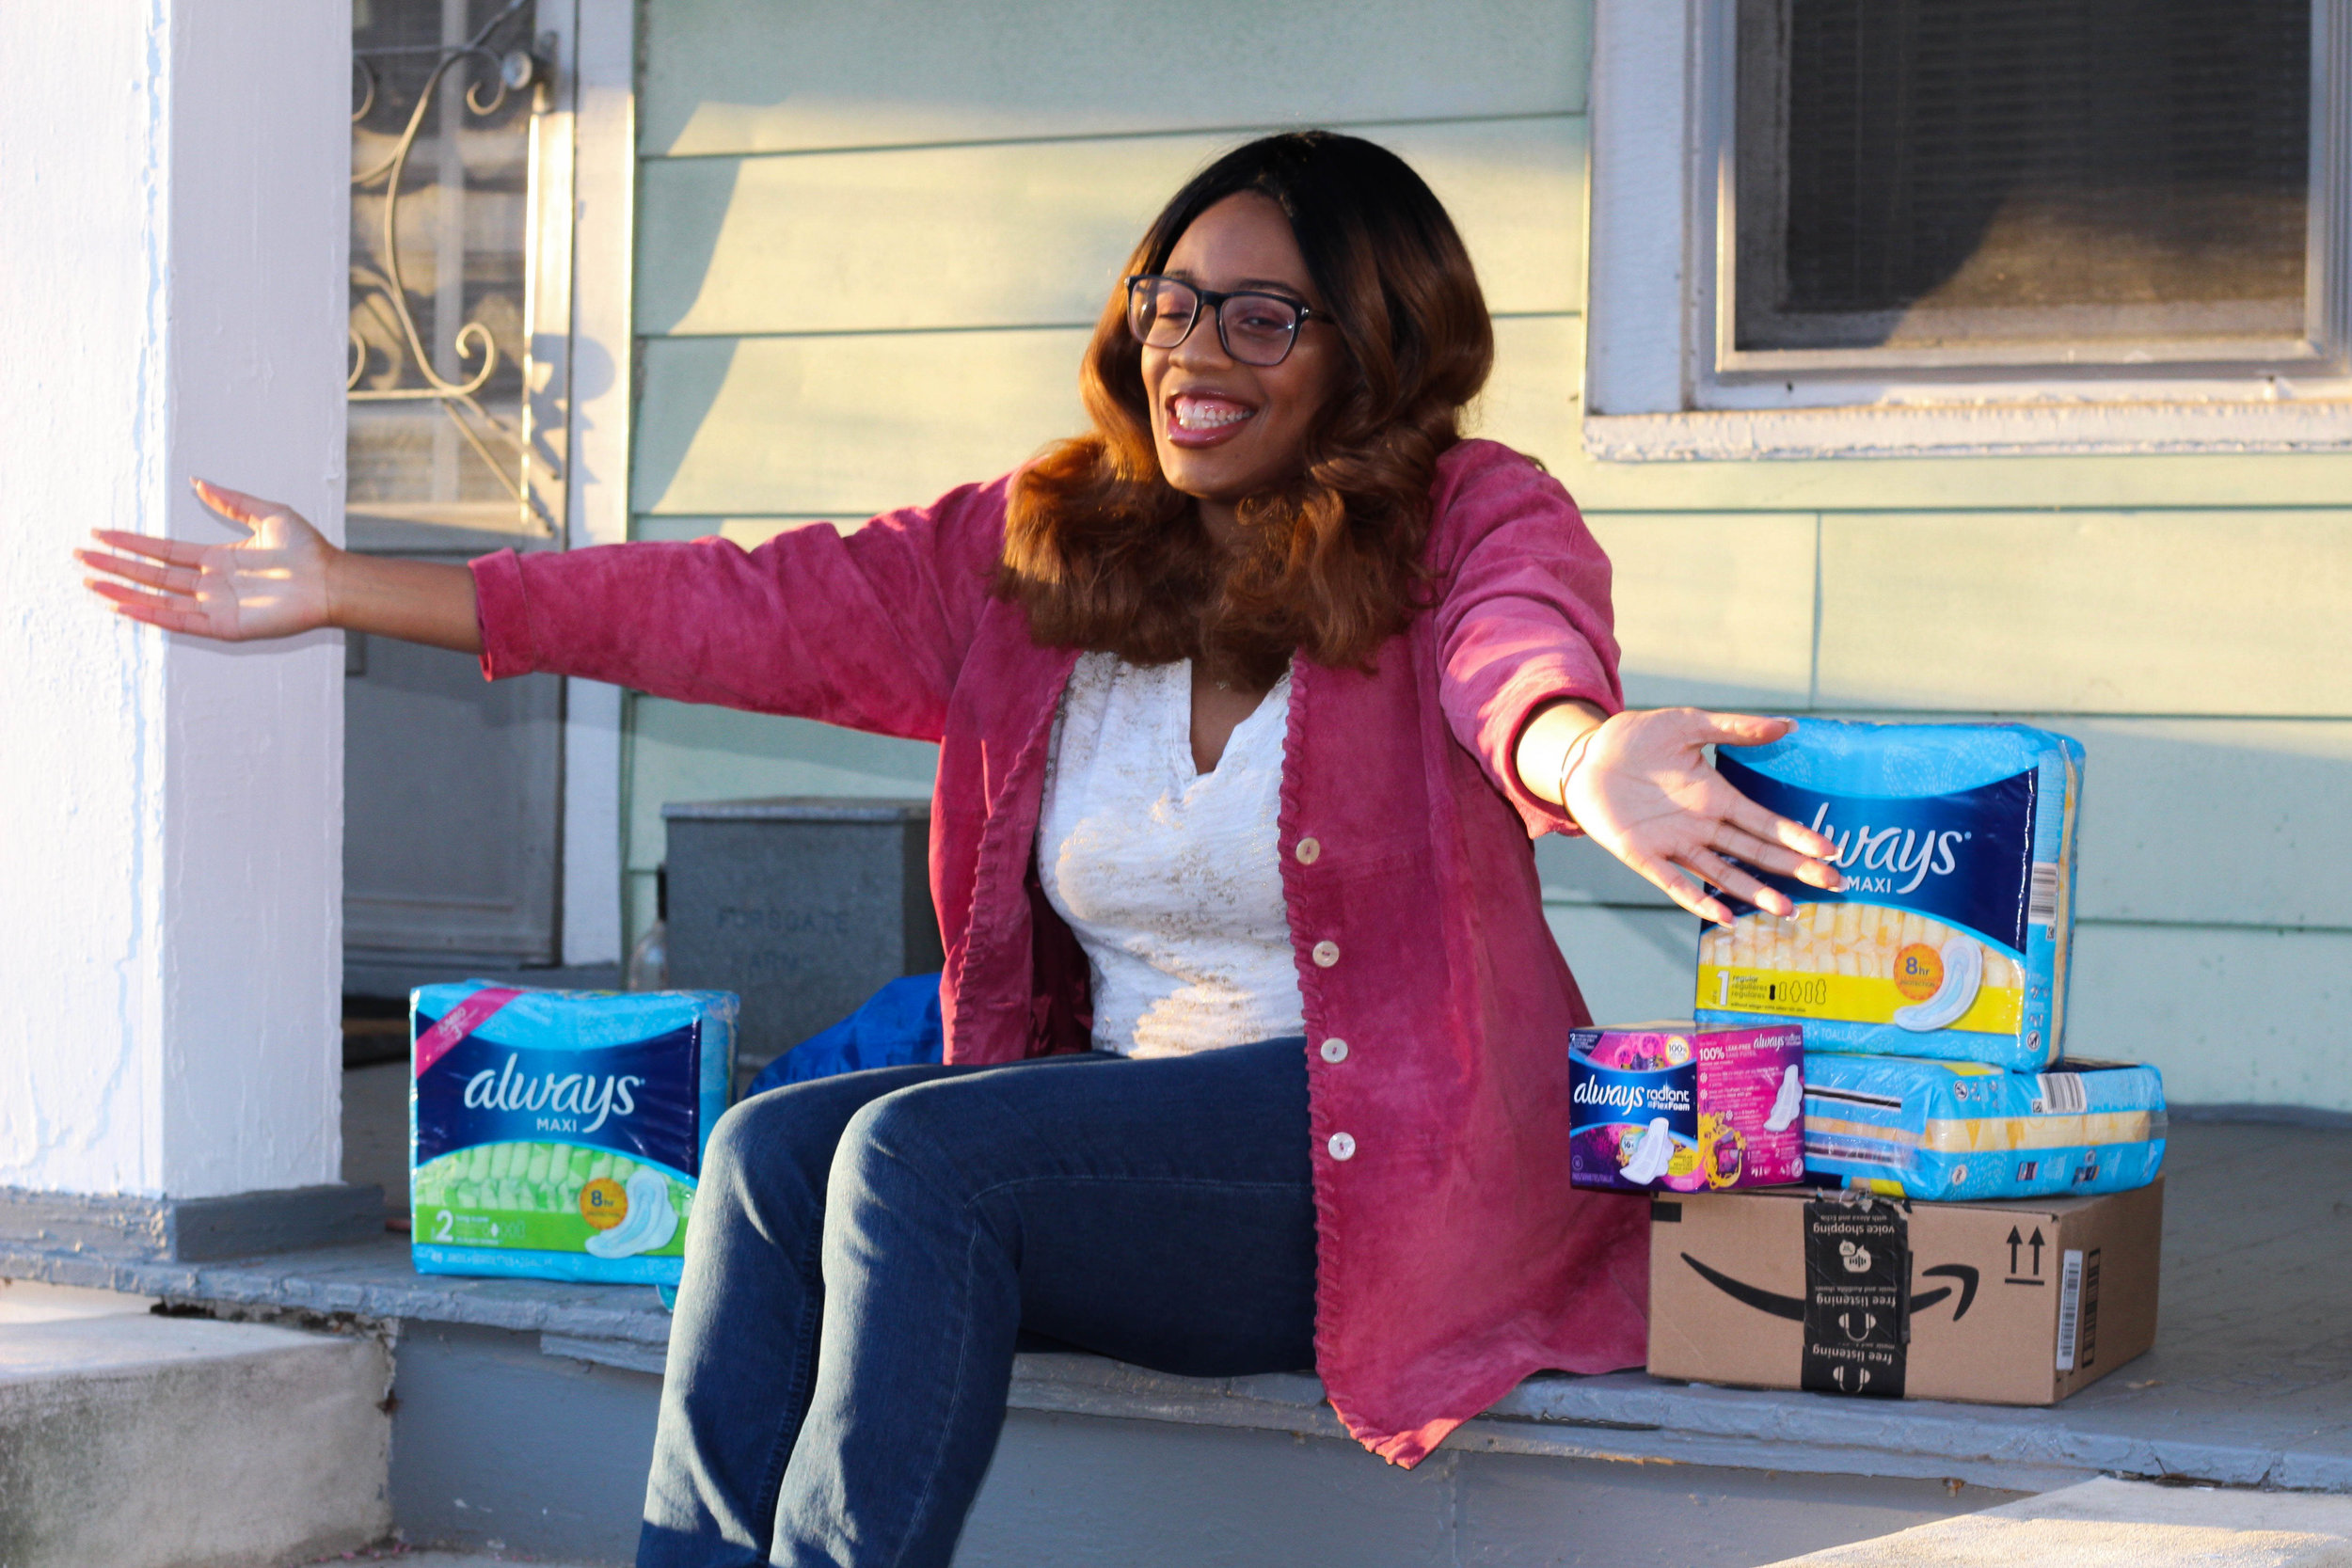 24 Days of Giving in the Community - 24 Days of Giving has provided over hundreds of feminine care products to agencies that help our communities.These agencies include HomeFront and Catholic Charities both of Mercer County, NJ.